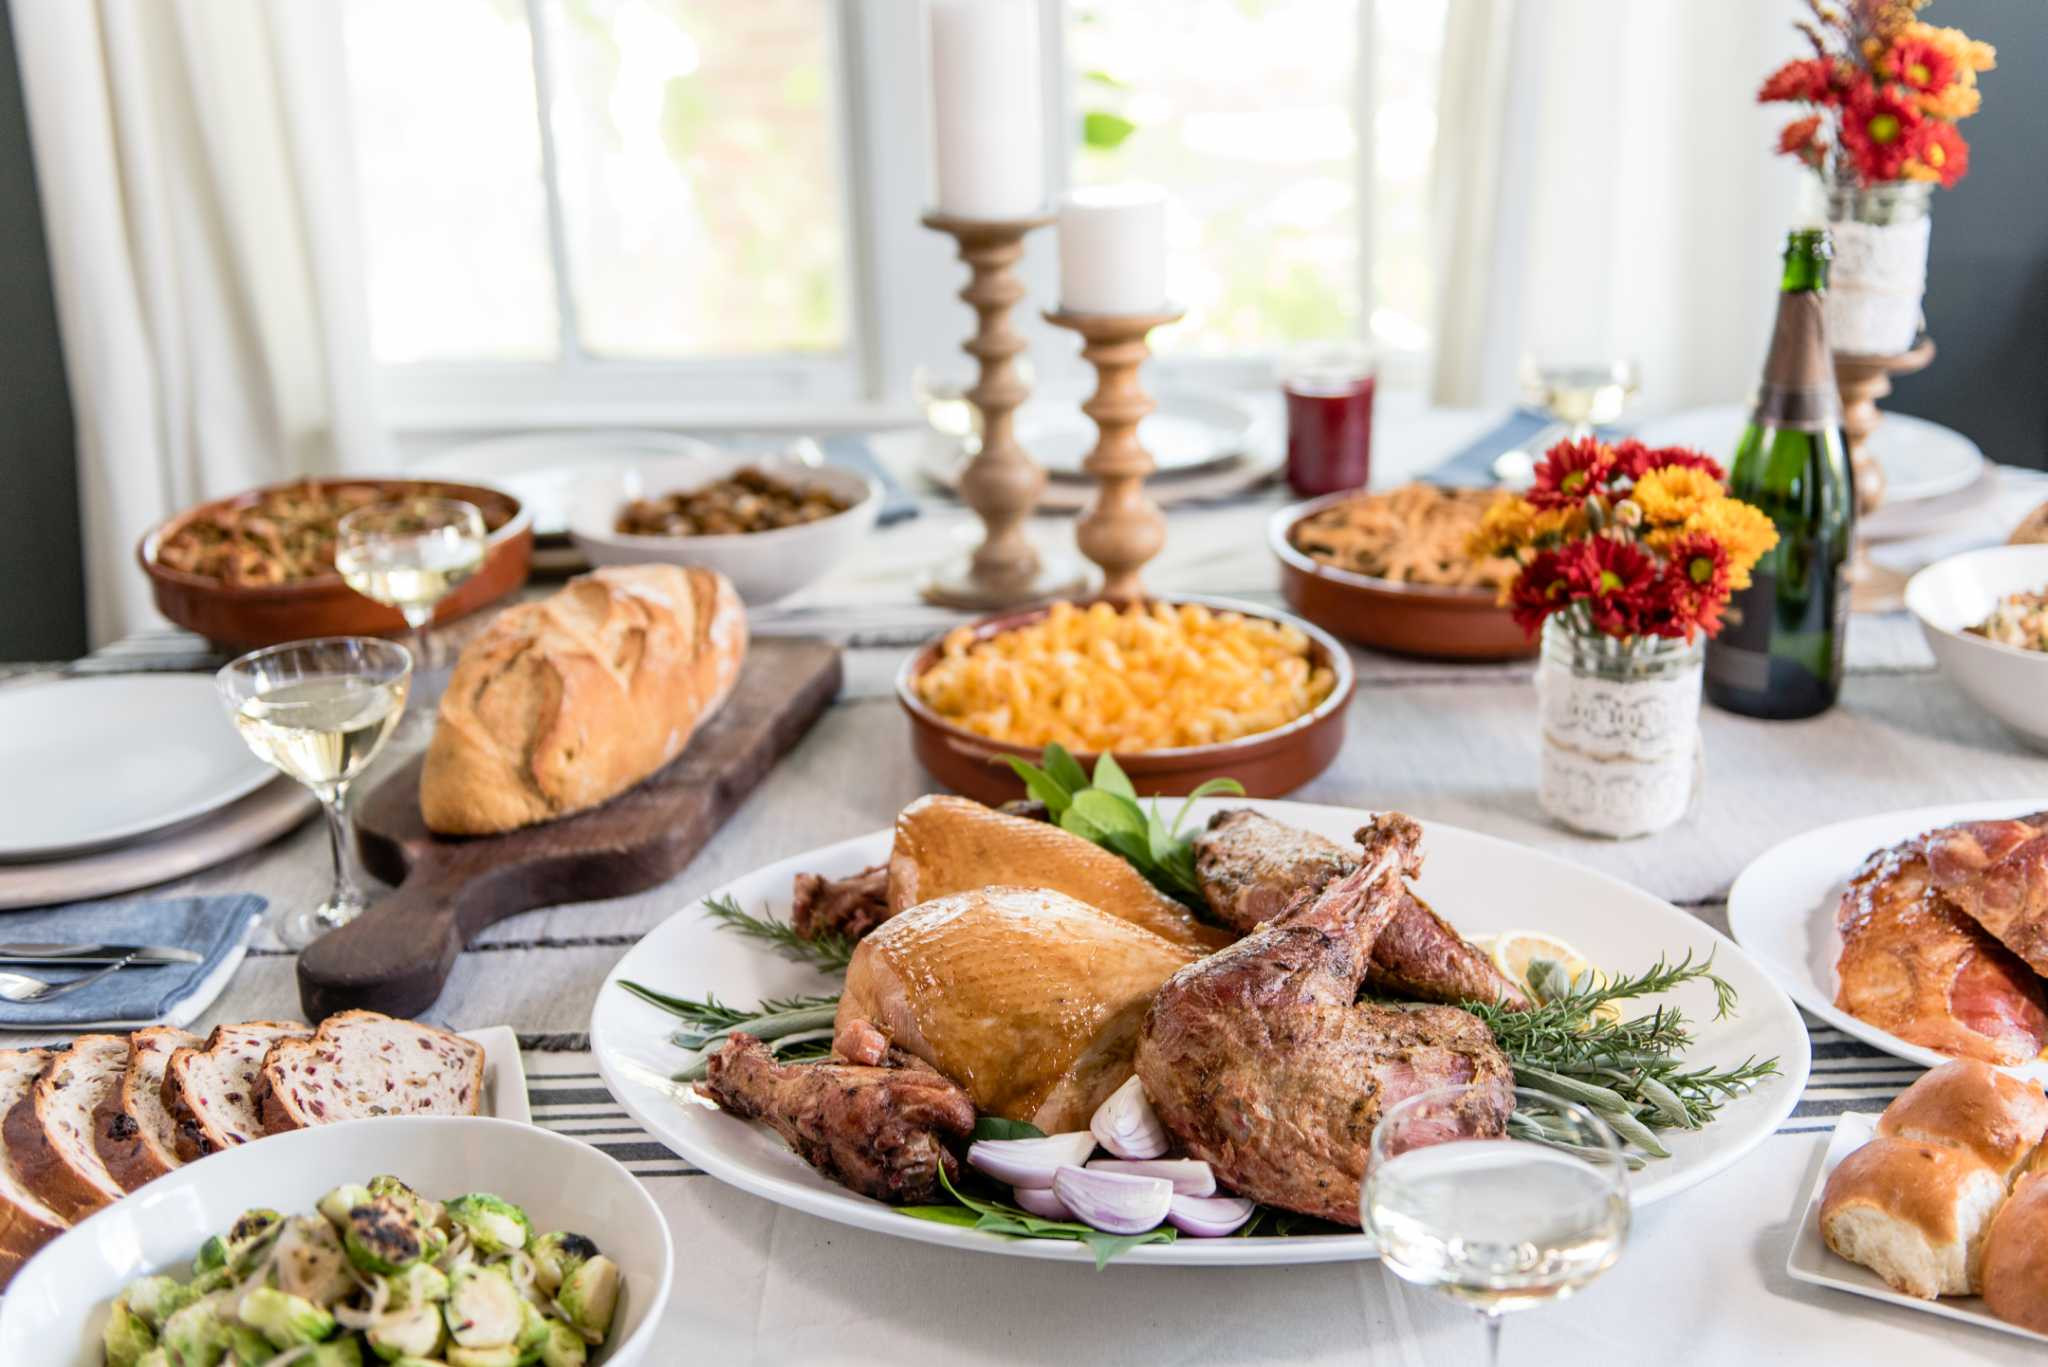 Restaurant Thanksgiving Dinner  Don t feel like cooking Order Thanksgiving dinner from